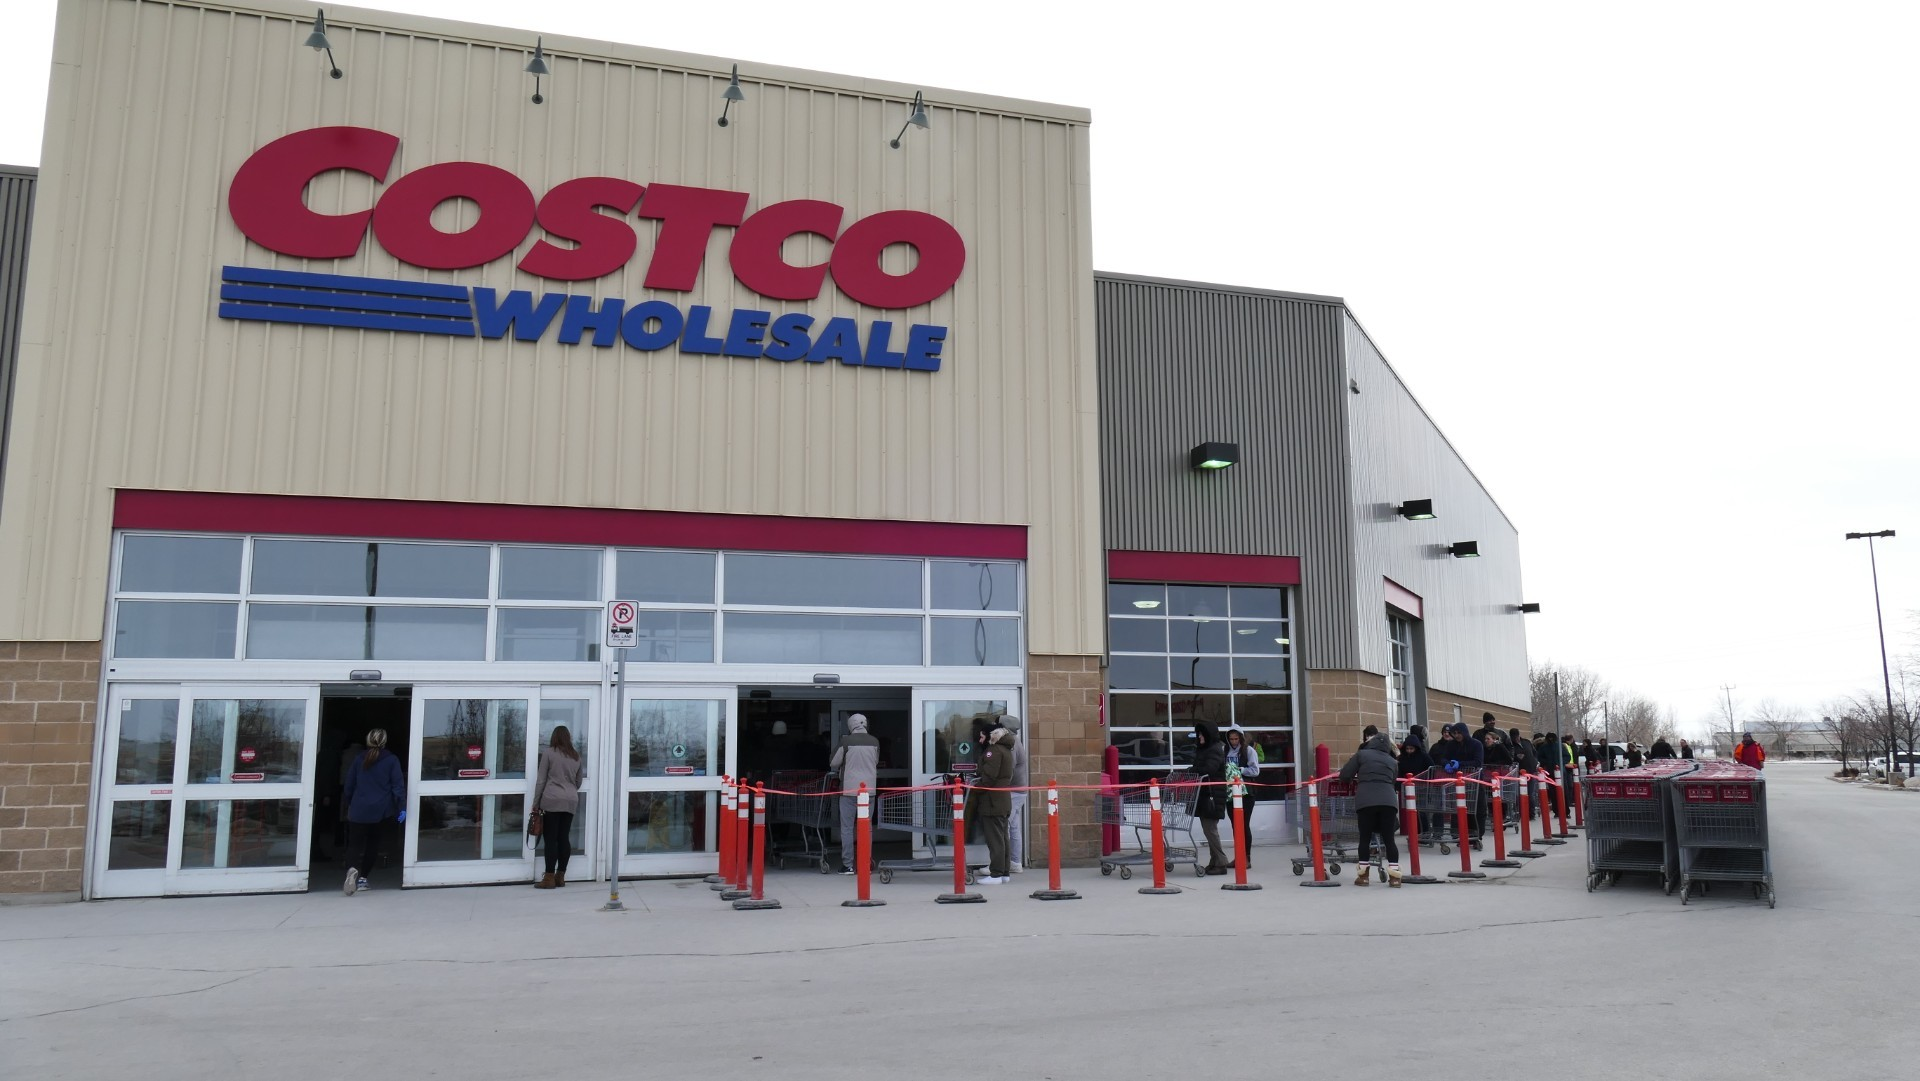 Customers wait in a lineup to go inside Costco on Kenaston Boulevard. (Darin Morash/CBC)